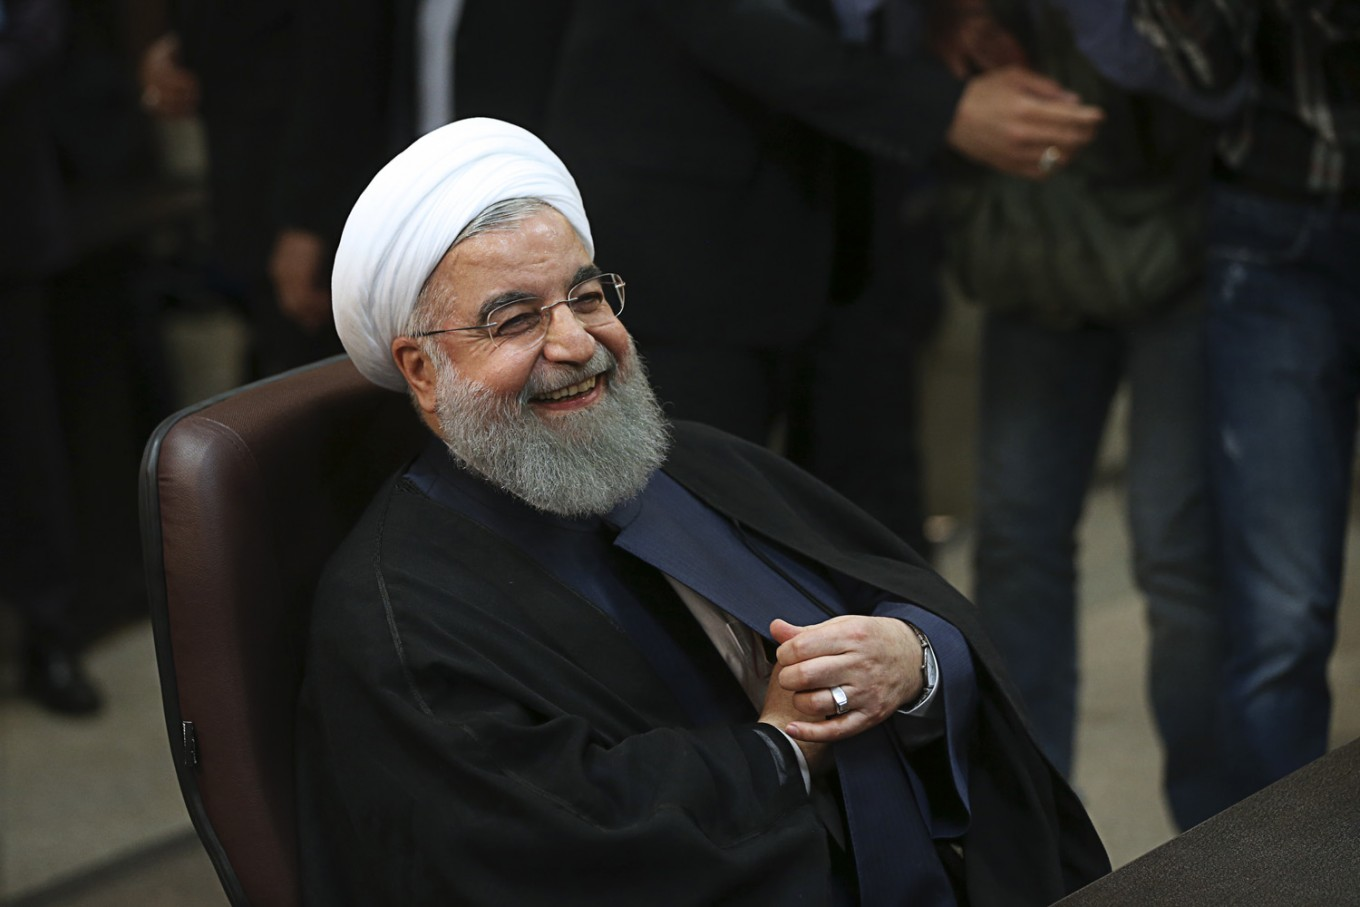 Iran says US violating nuclear deal with sanctions